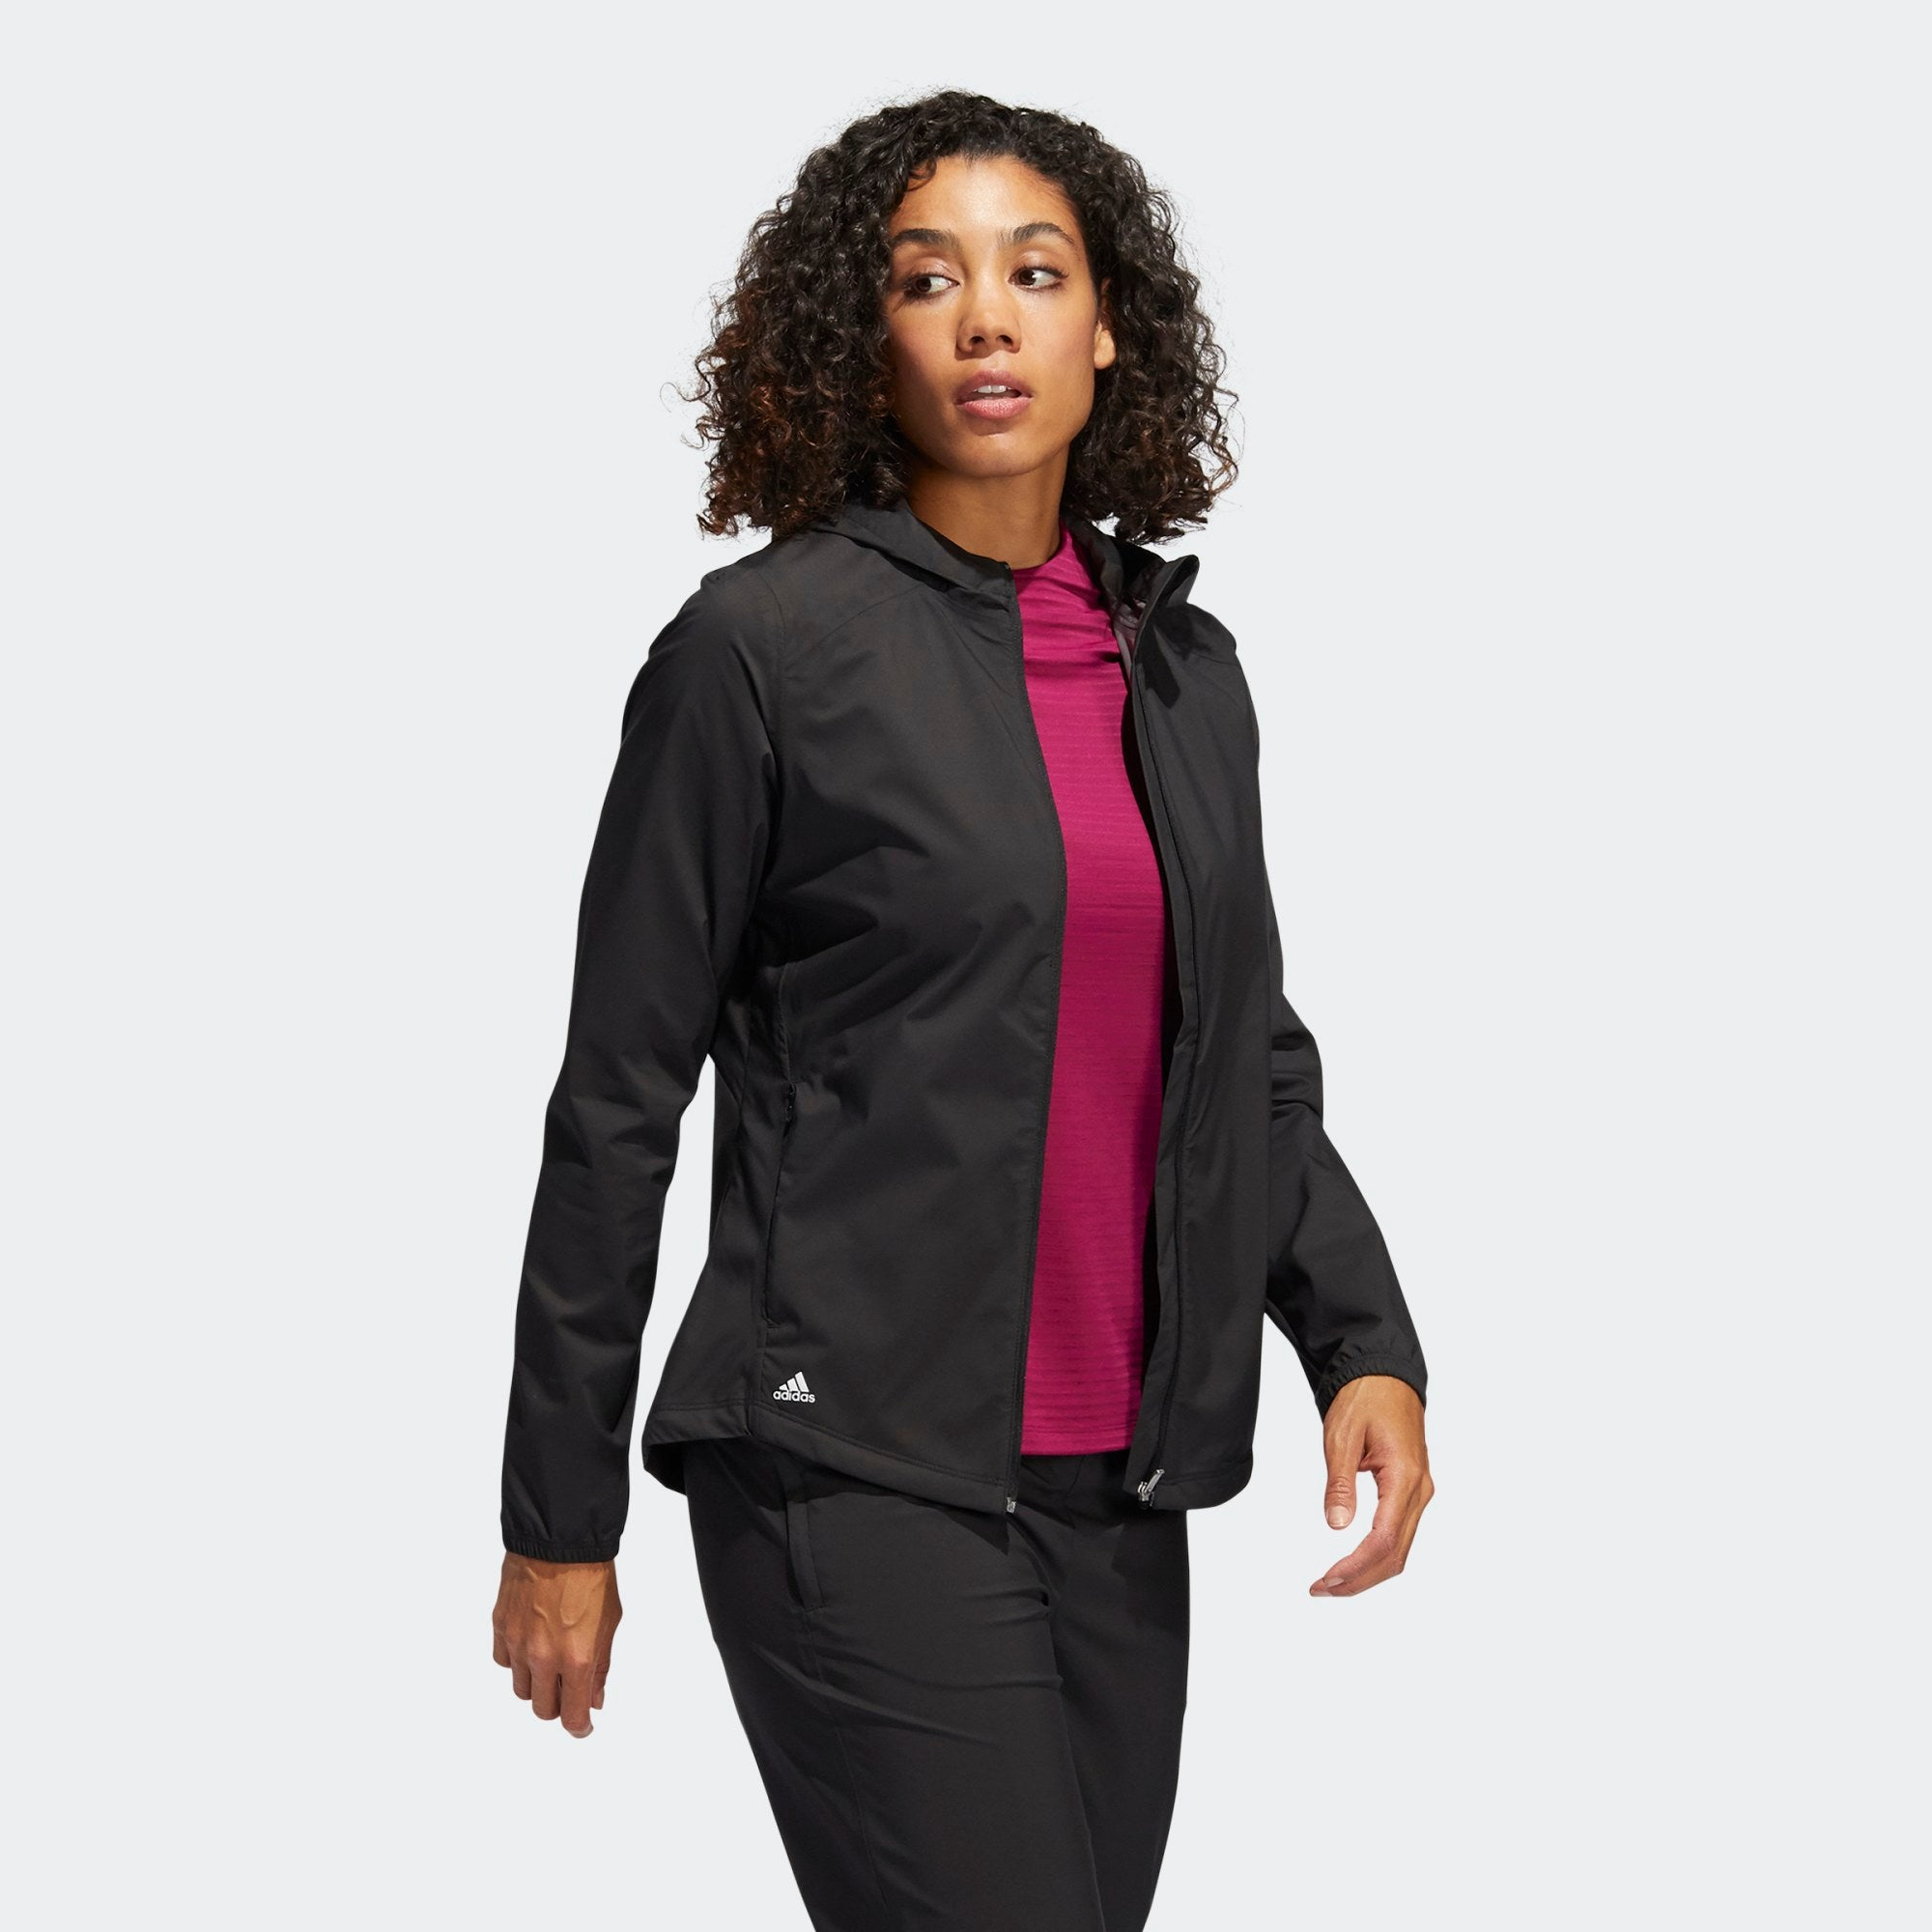 Adidas Womens Provisional Jacket - Black